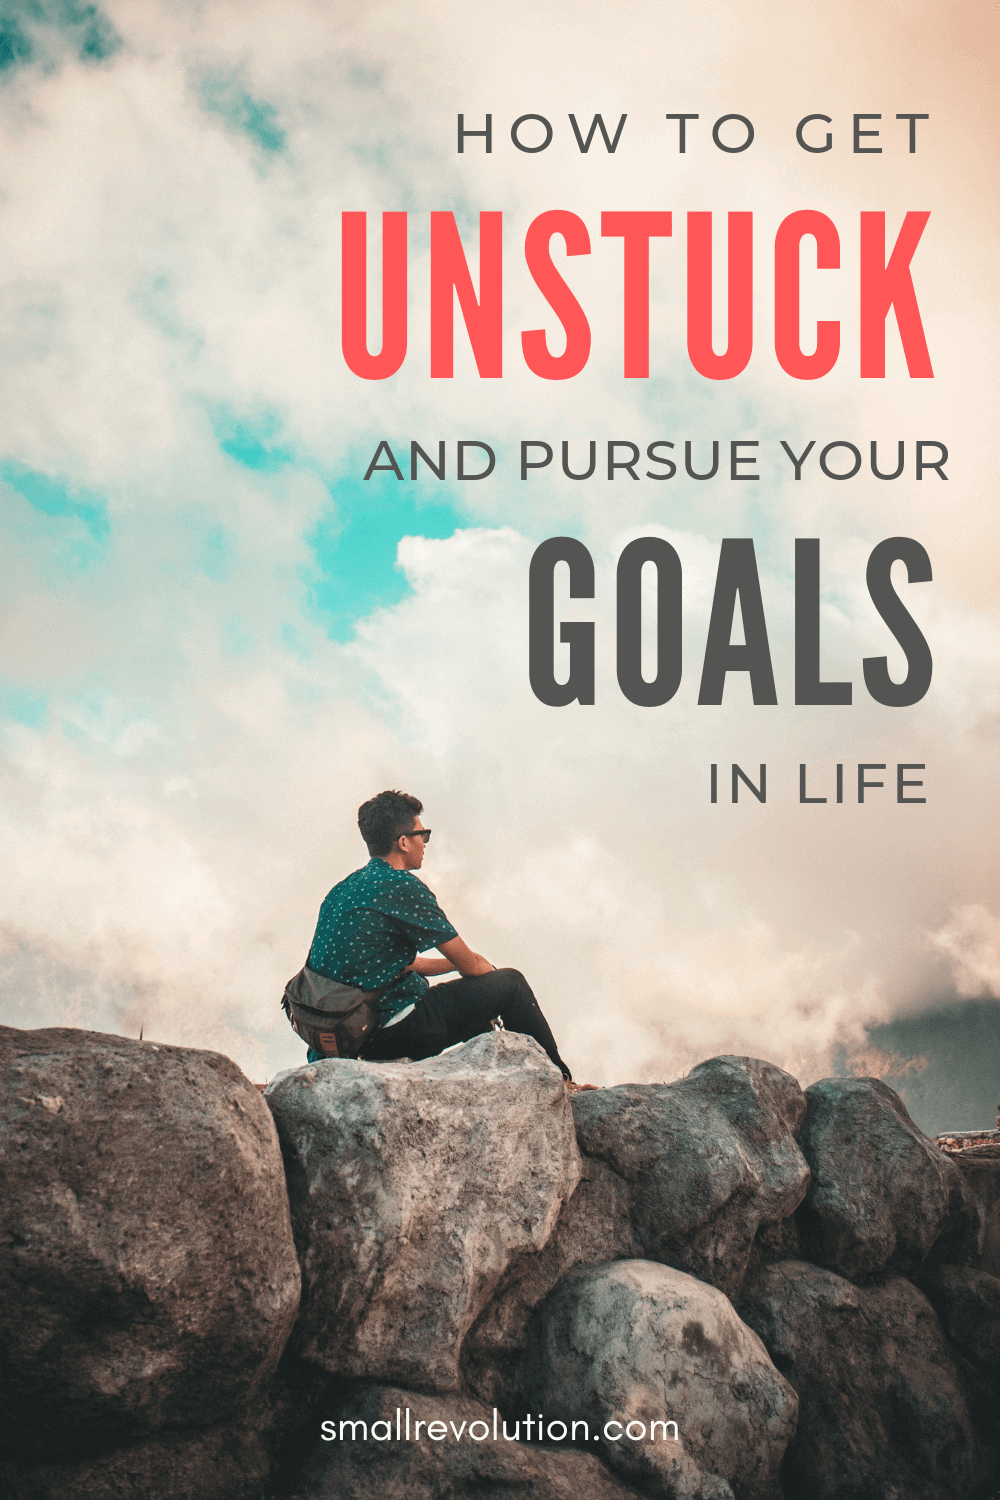 How to get unstuck and pursue your goals in life